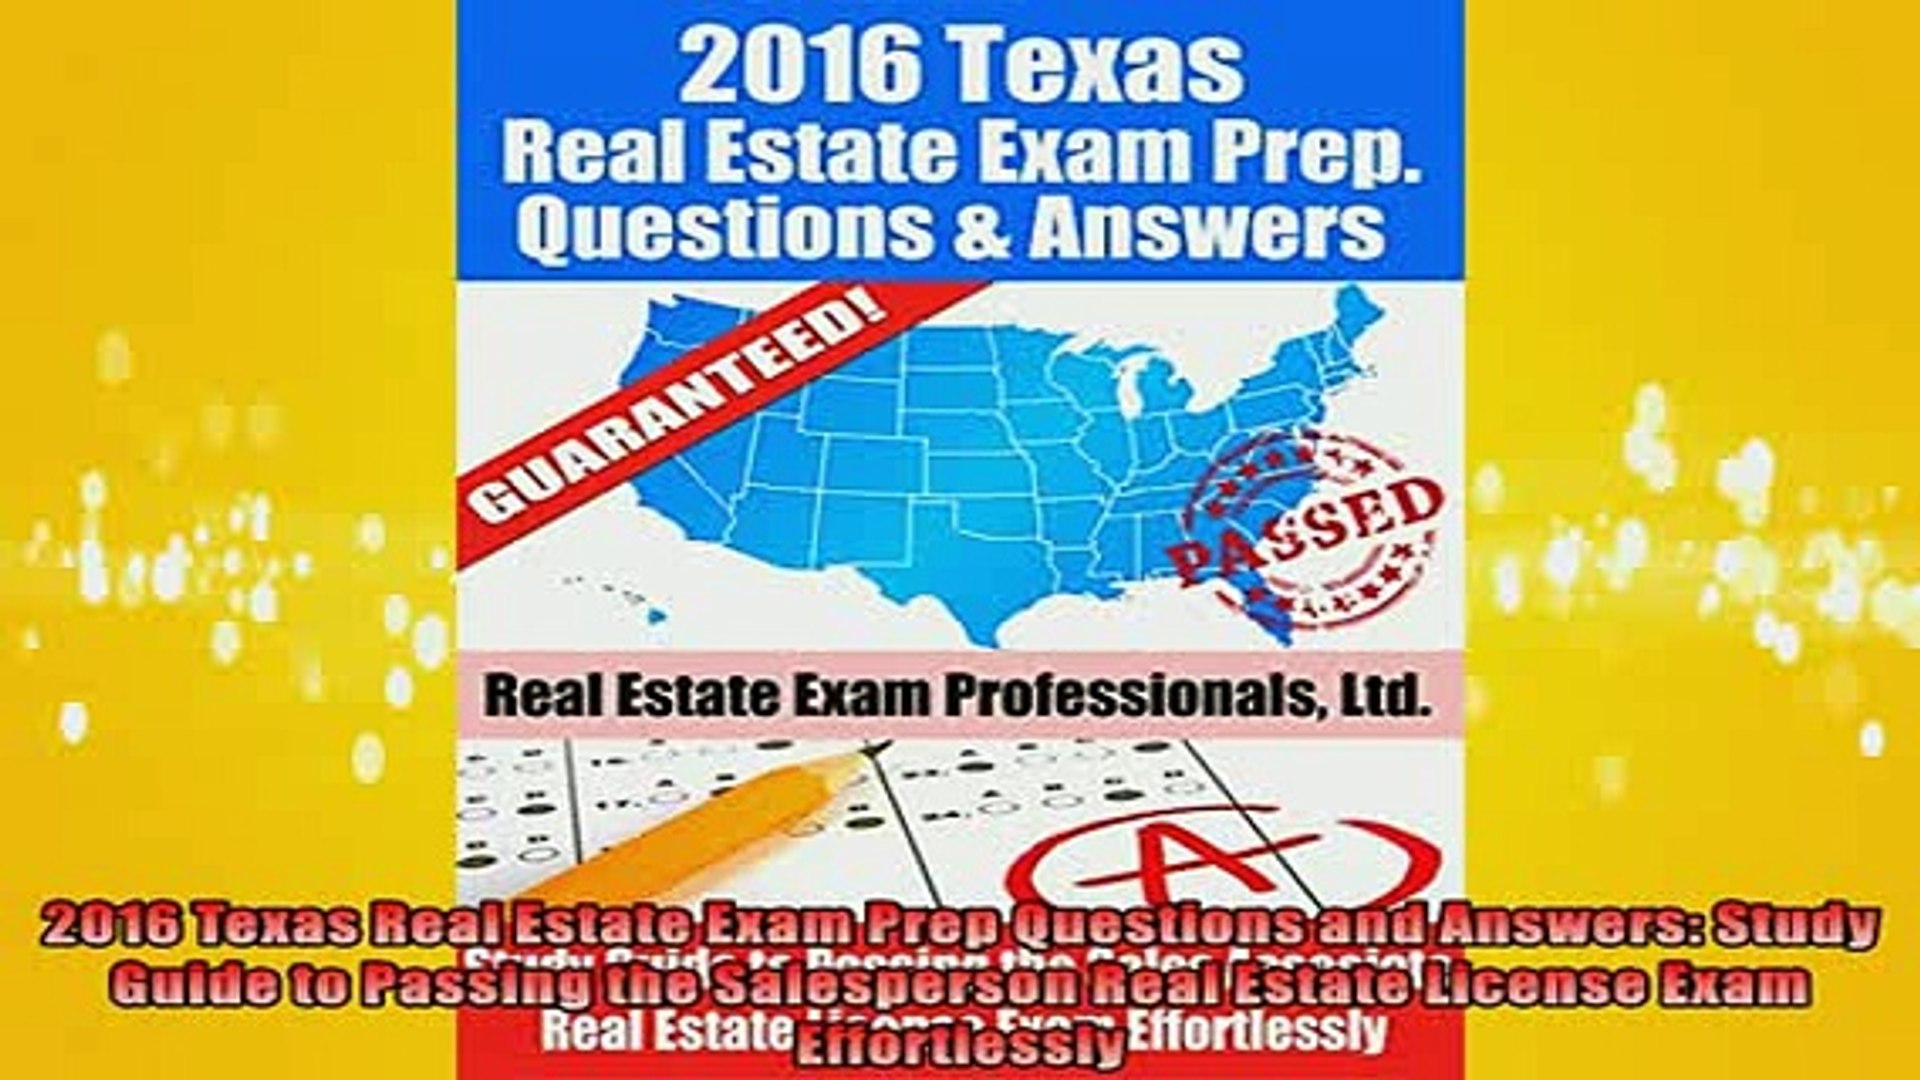 FREE PDF 2016 Texas Real Estate Exam Prep Questions and Answers Study Guide  to Passing the READ ONLINE